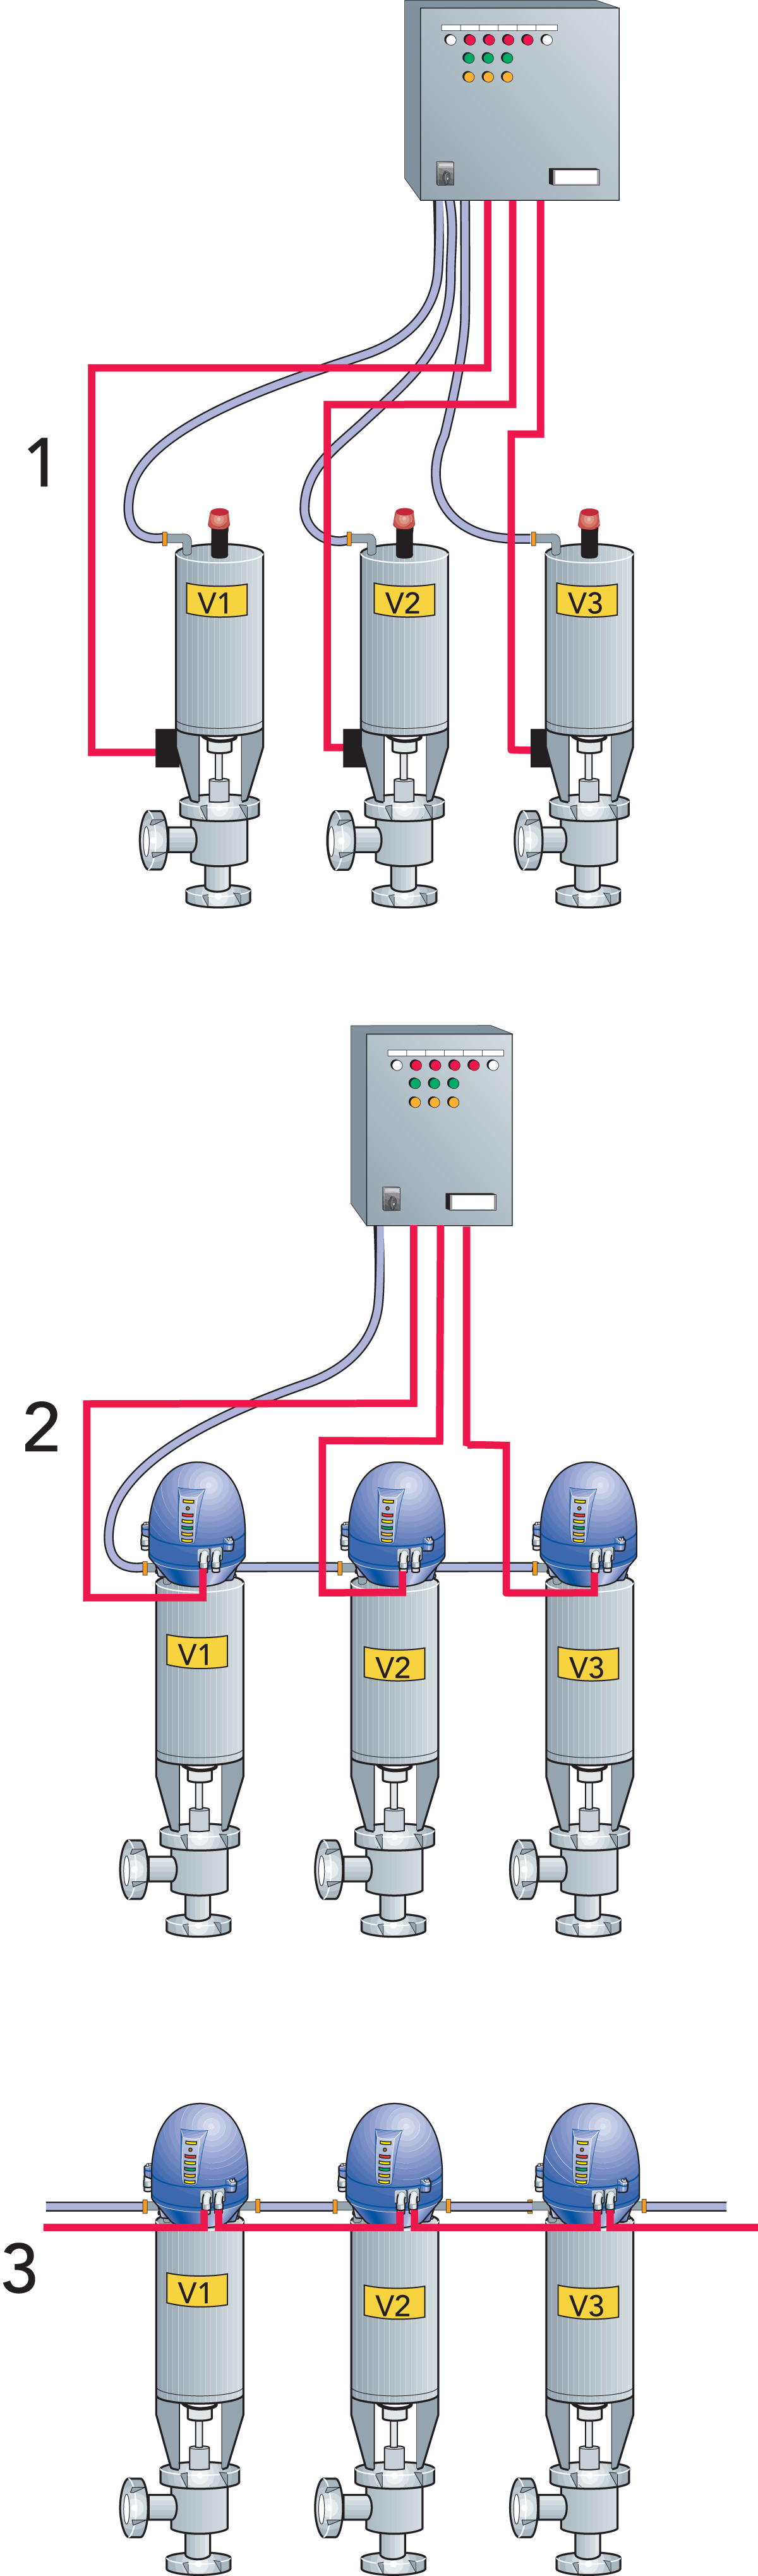 Pipes Valves And Fittings Dairy Processing Handbook To Make Over Head Tank Water Level Indicator Cum Controller Circuit Zoom